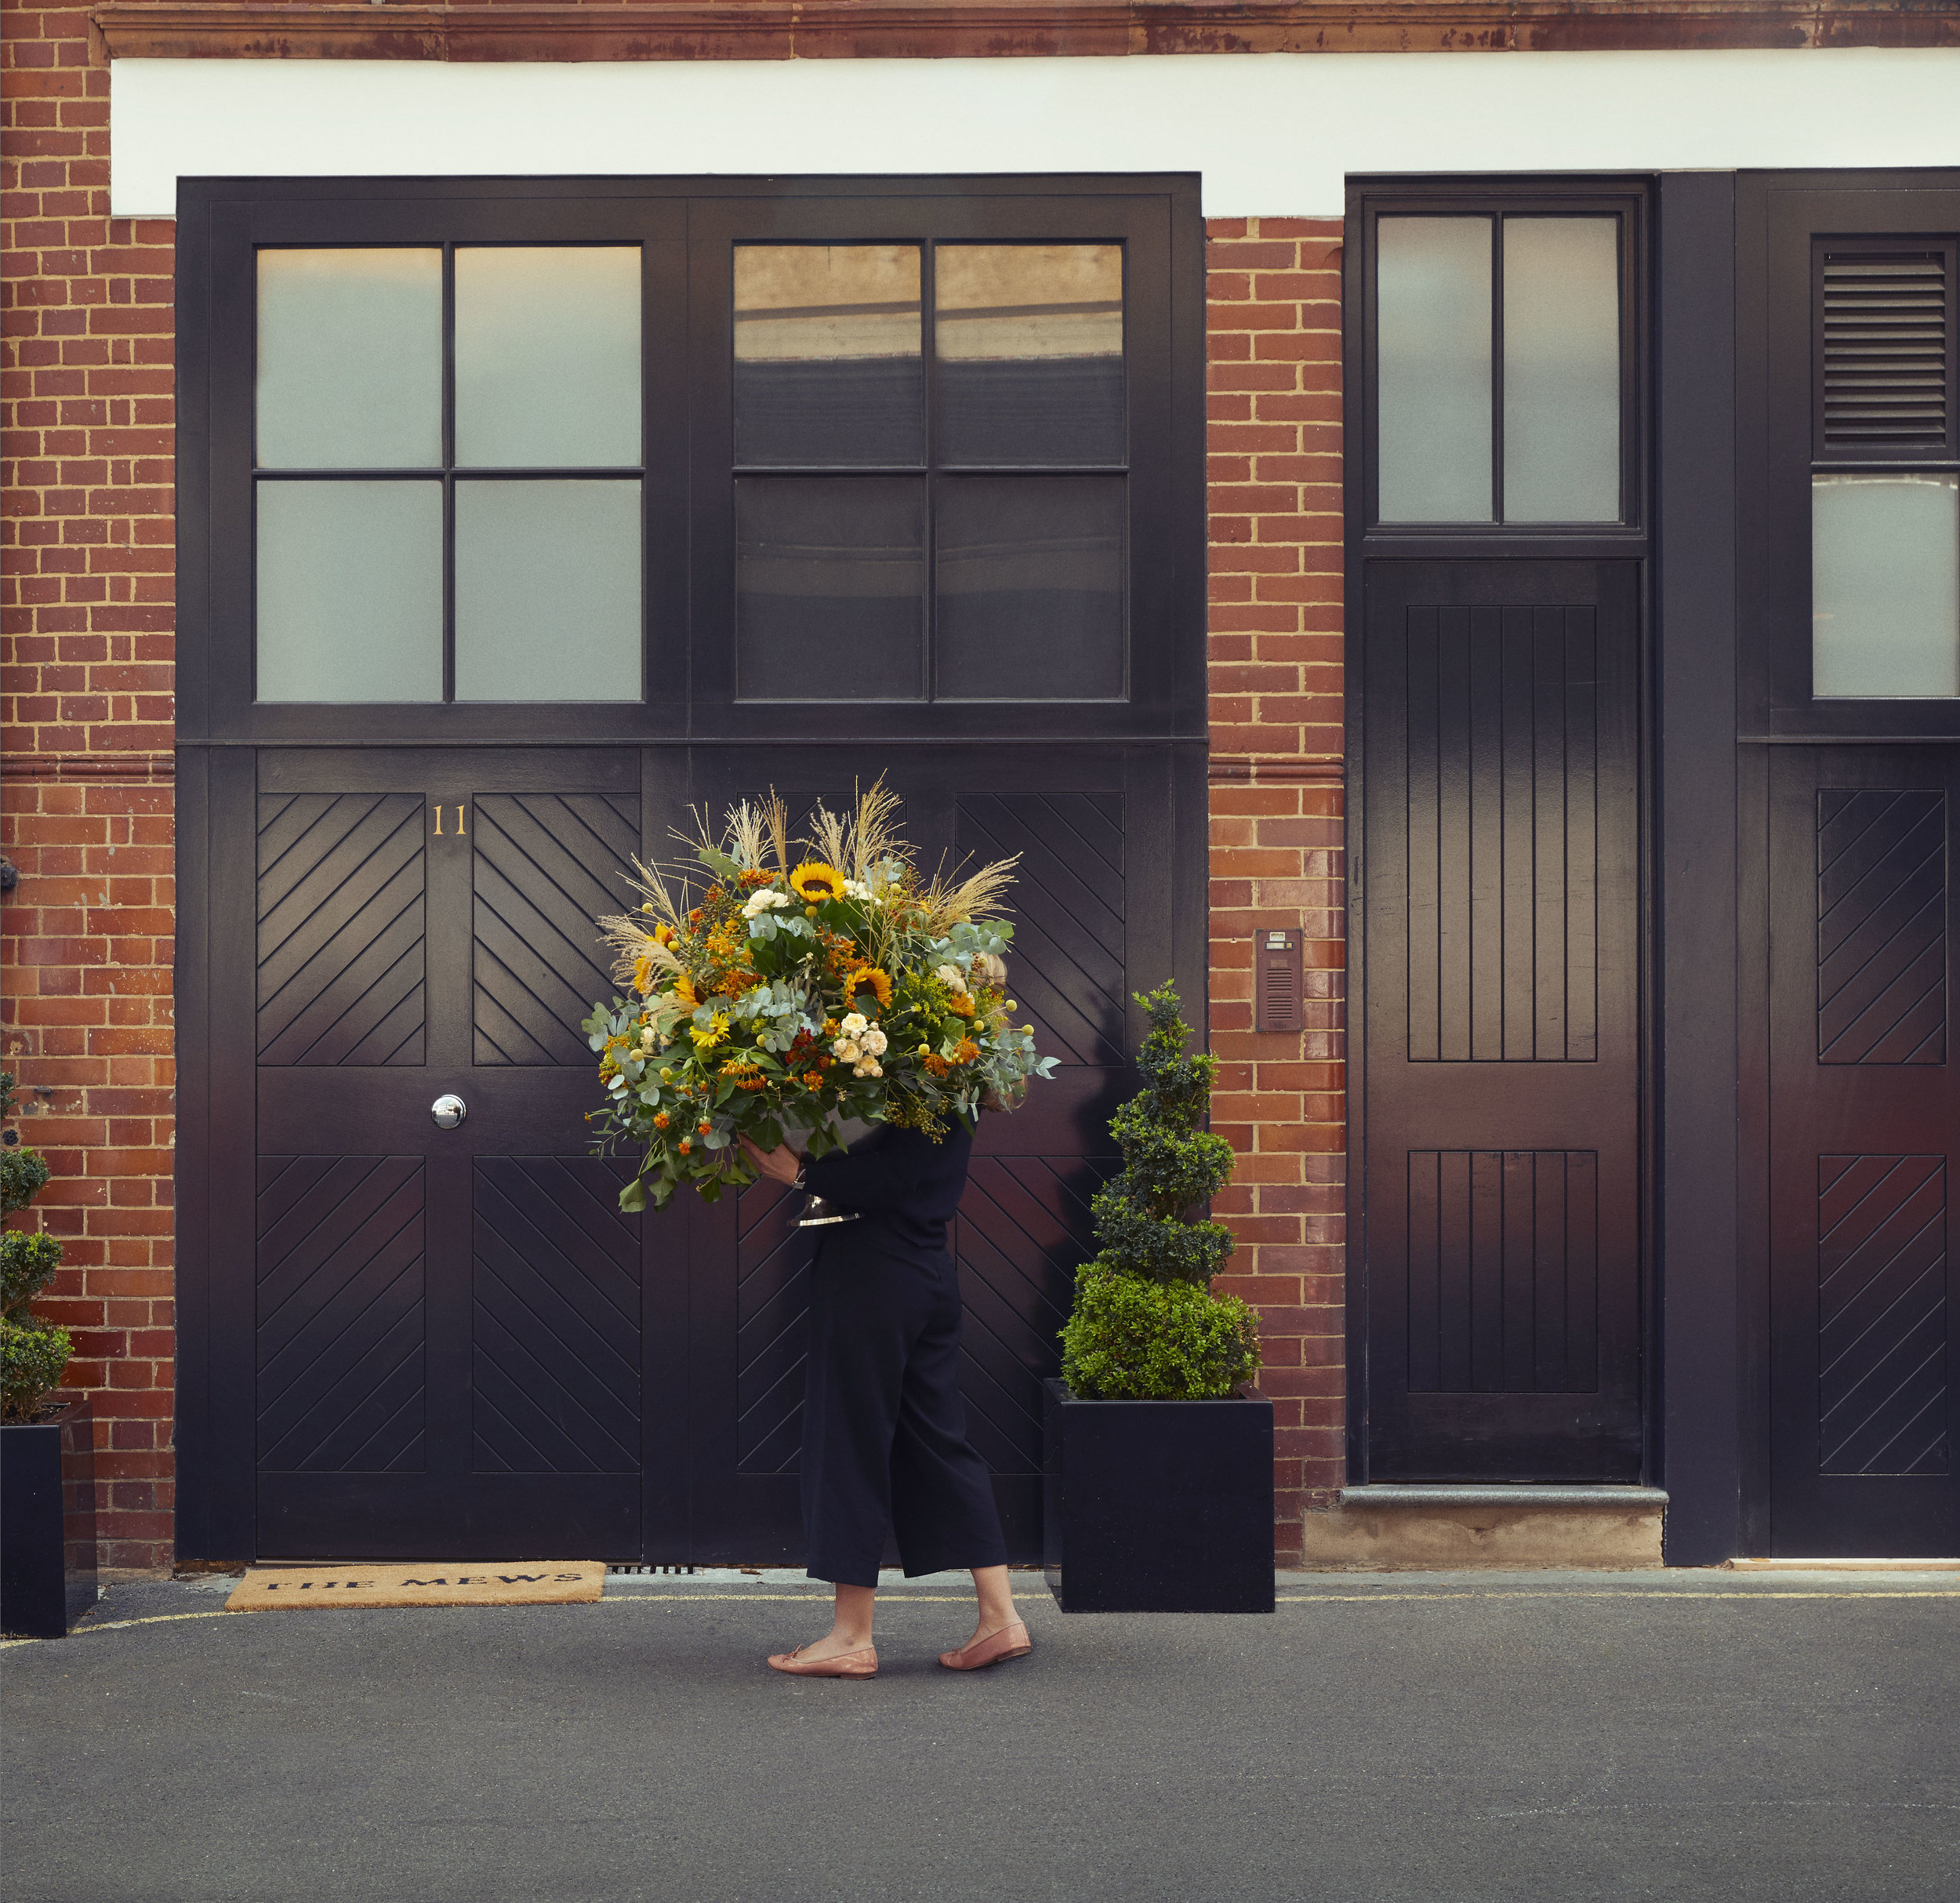 The Mews Entrance. Guests of The Mews are able to reserve the Bijoux Box free of charge for an evening, where they are invited to pick their favourite accessories to complete their look and enjoy their night out.